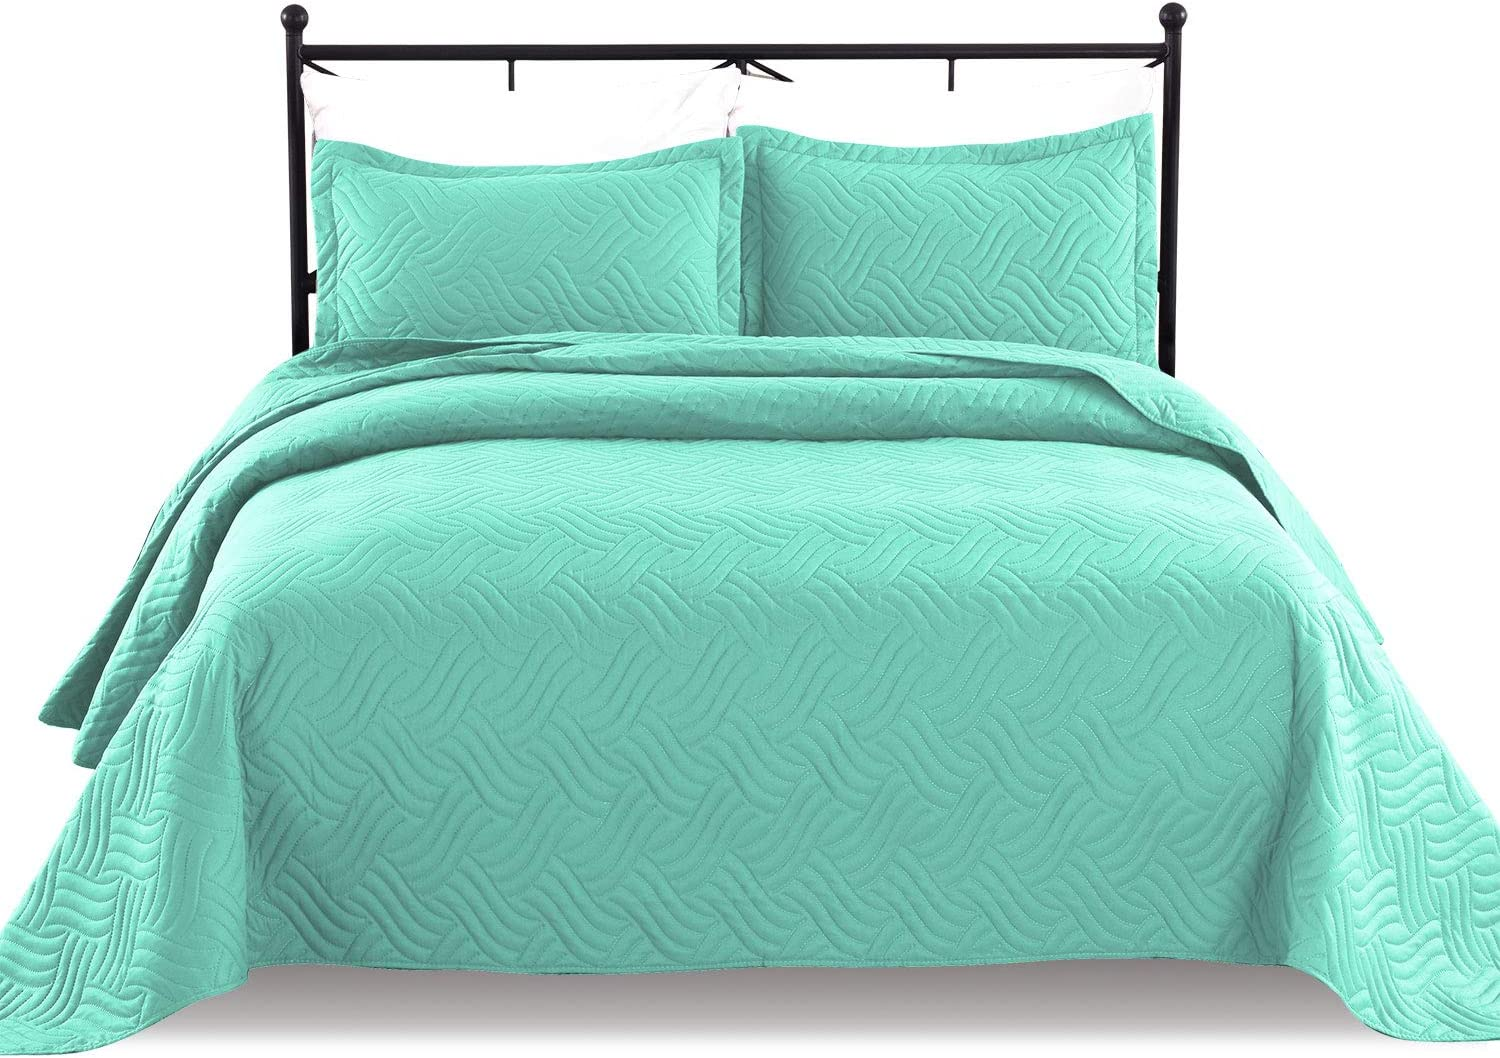 Luxe Bedding 3-Piece Oversized Quilted Bedspread Coverlet Set (Full/Queen, WAVA/Turquoise)